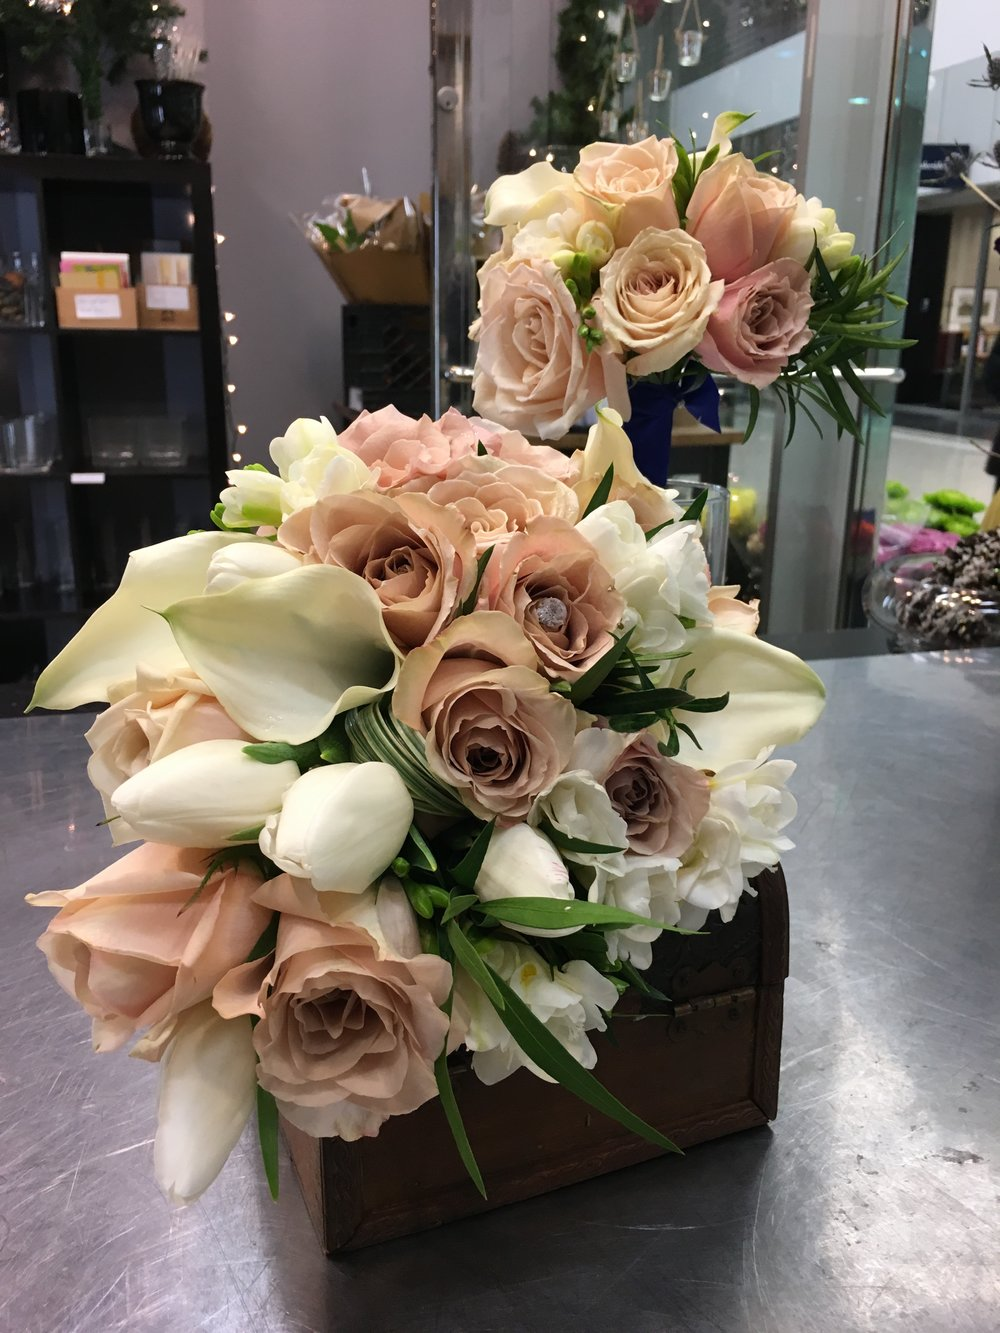 1 Bride  1 Bridesmaid bouquet $154.98 plus tax. Roses, tulips (seasonal) freesias, callas greenery and double satin ribbon